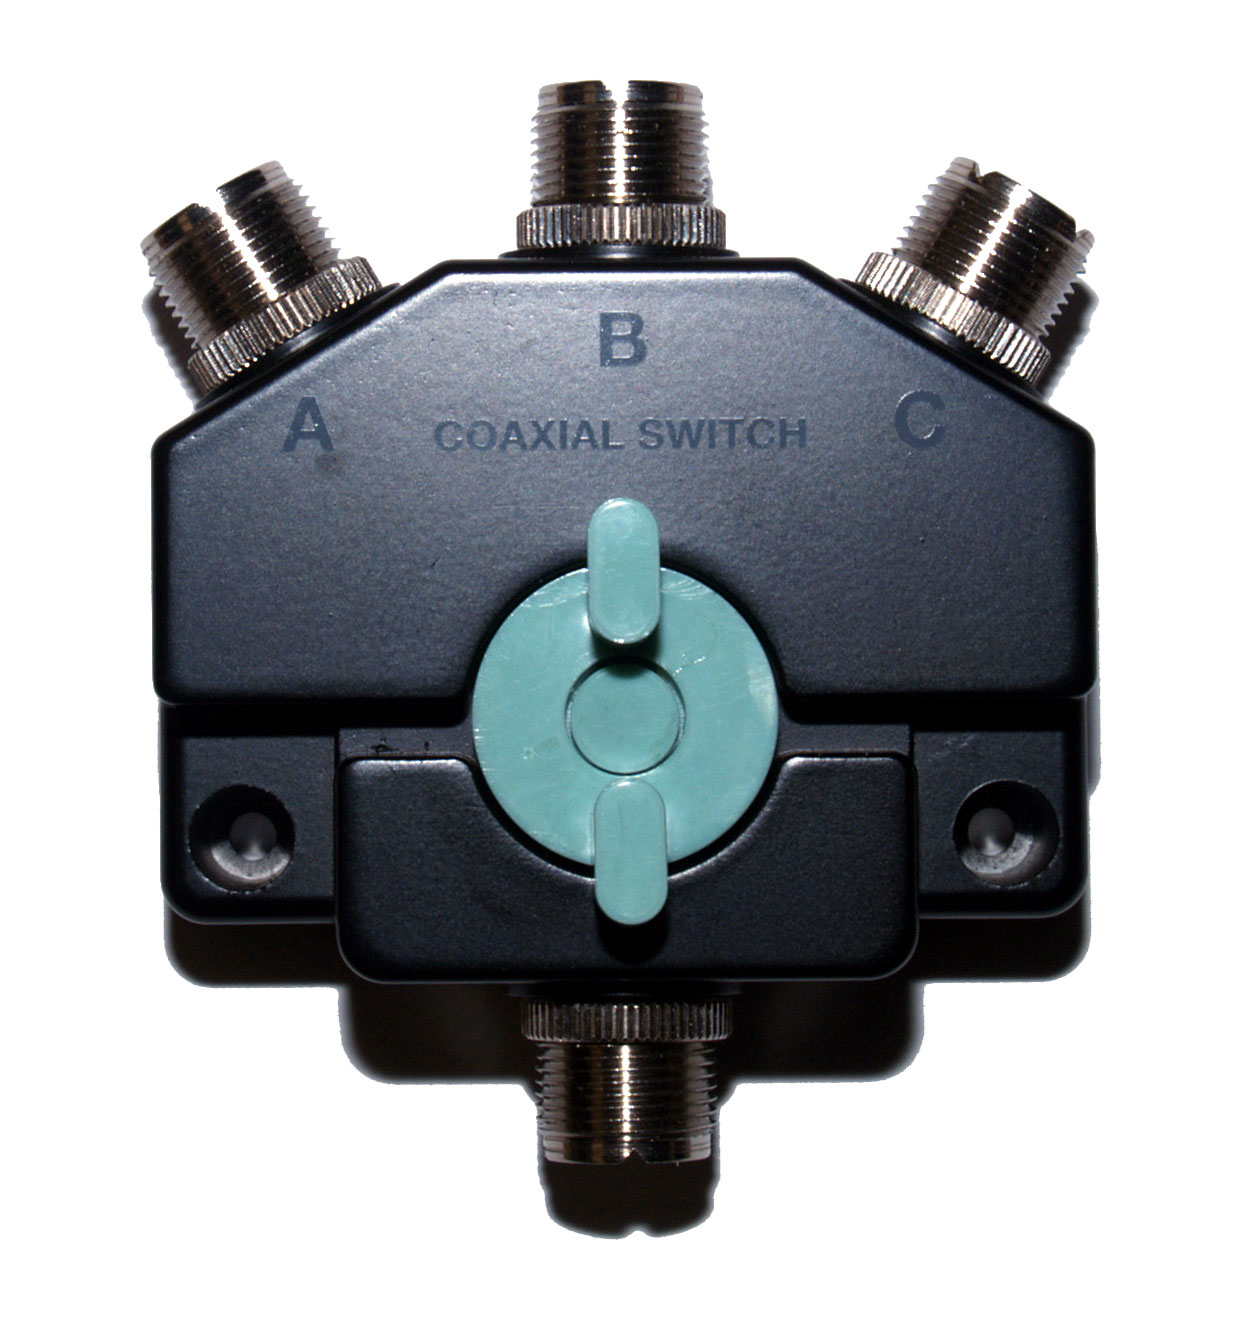 CO-301 Three-way heavy duty coaxial antenna switch